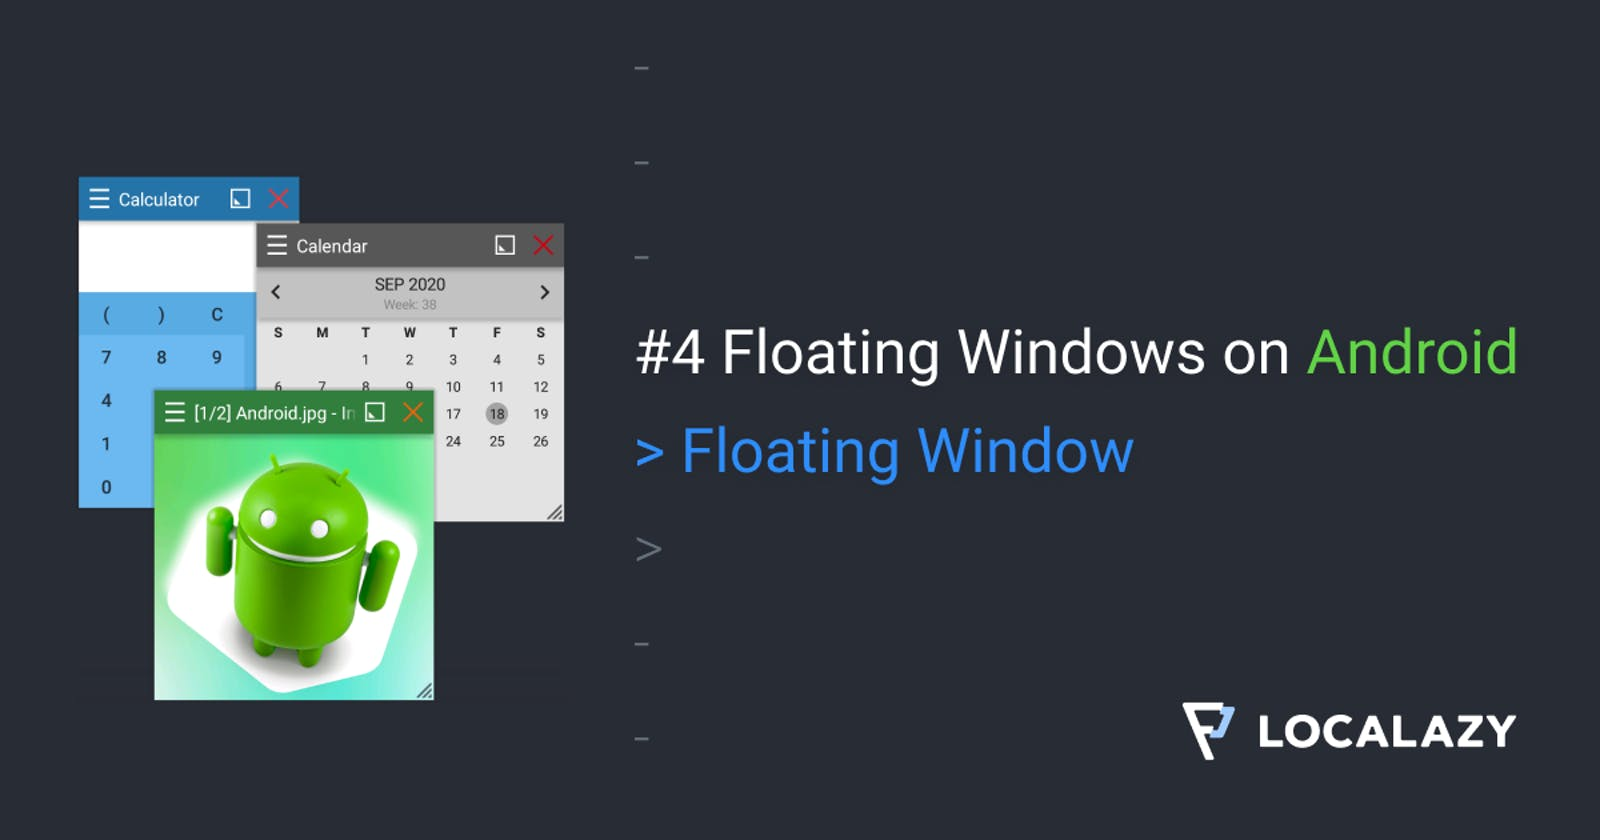 #4 Show windows floating over other apps on Android